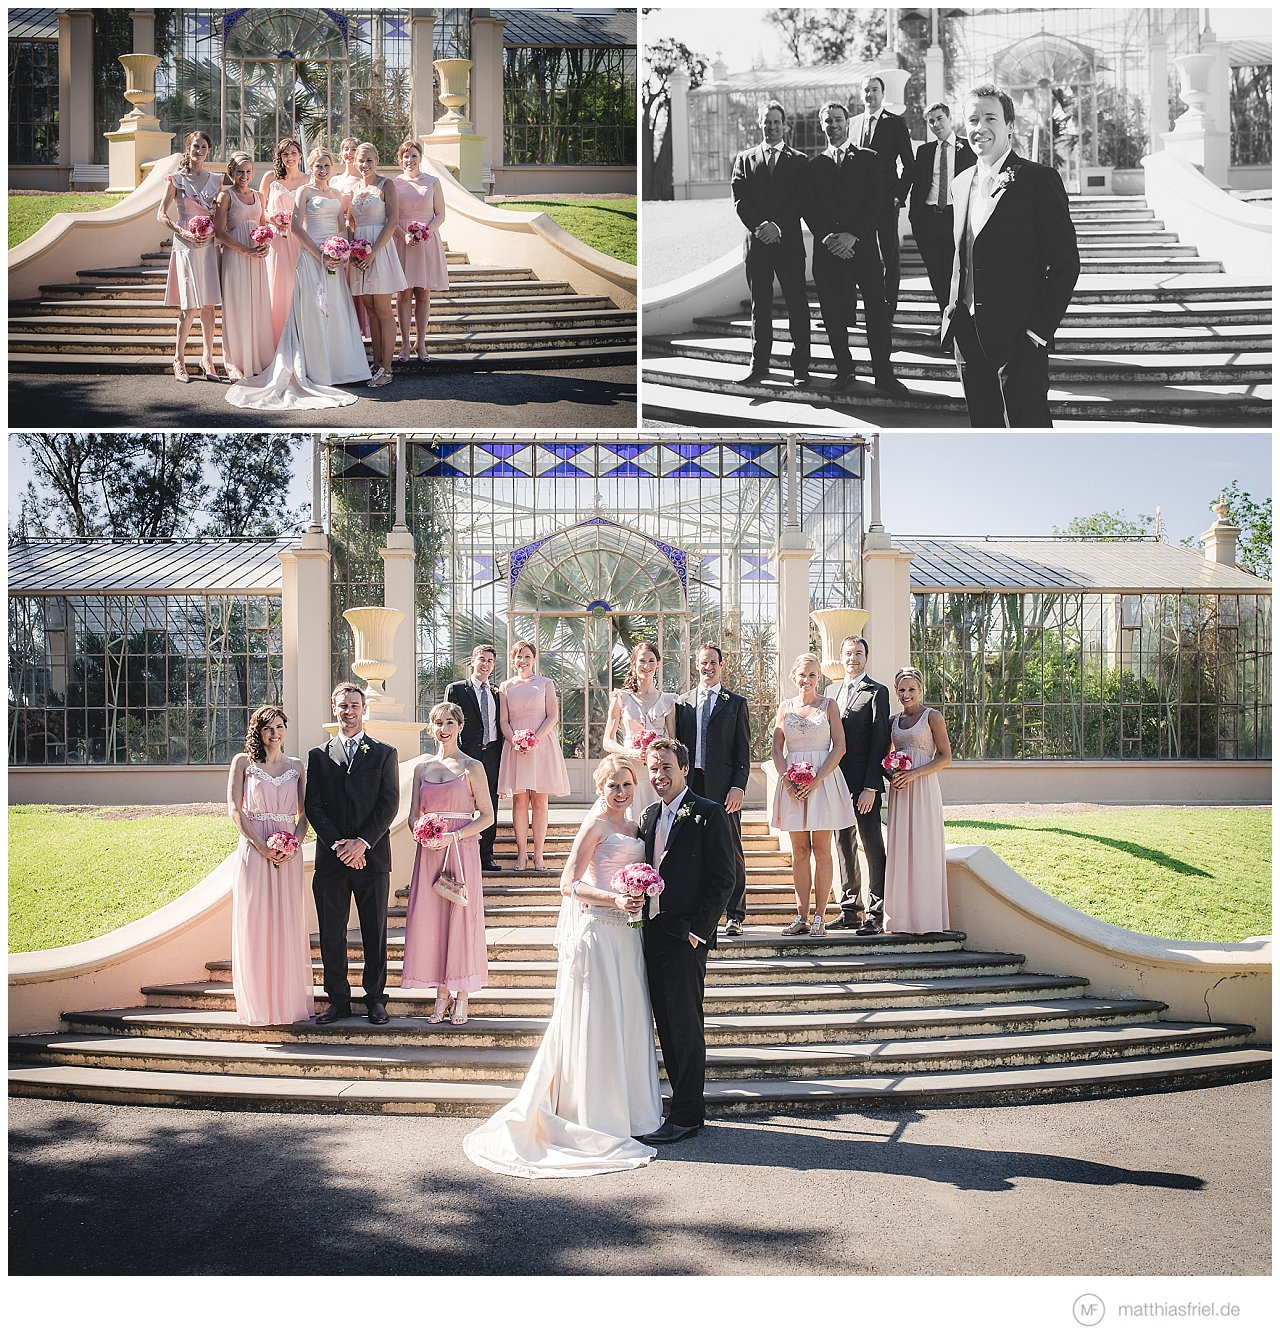 wedding-australia-adelaide-melita-jimmy-matthias-friel_0039